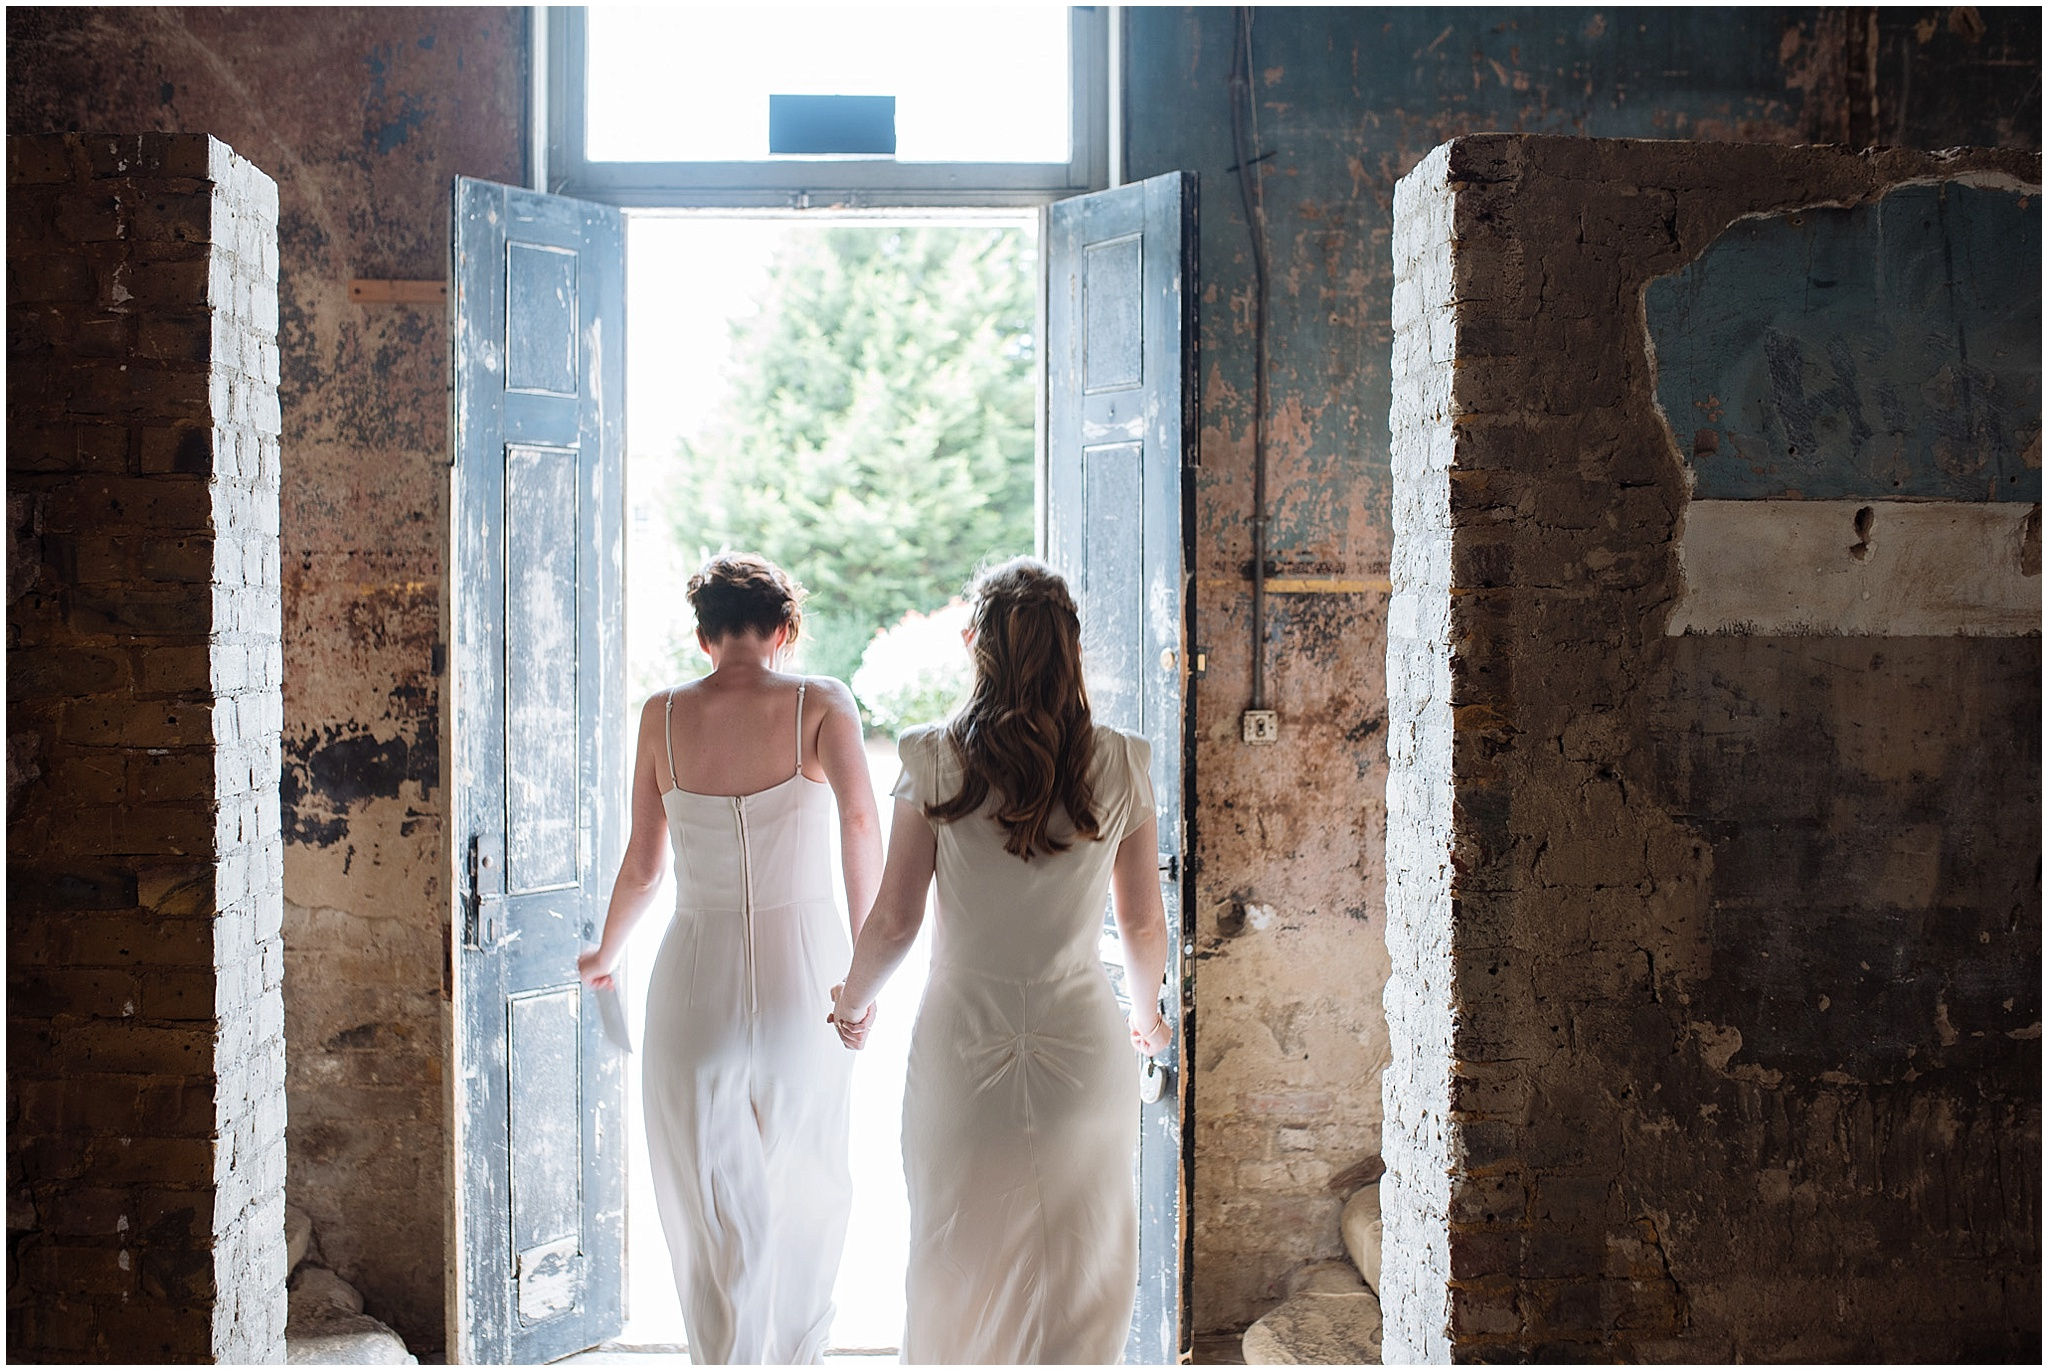 asylum london wedding photography FB_0113 4